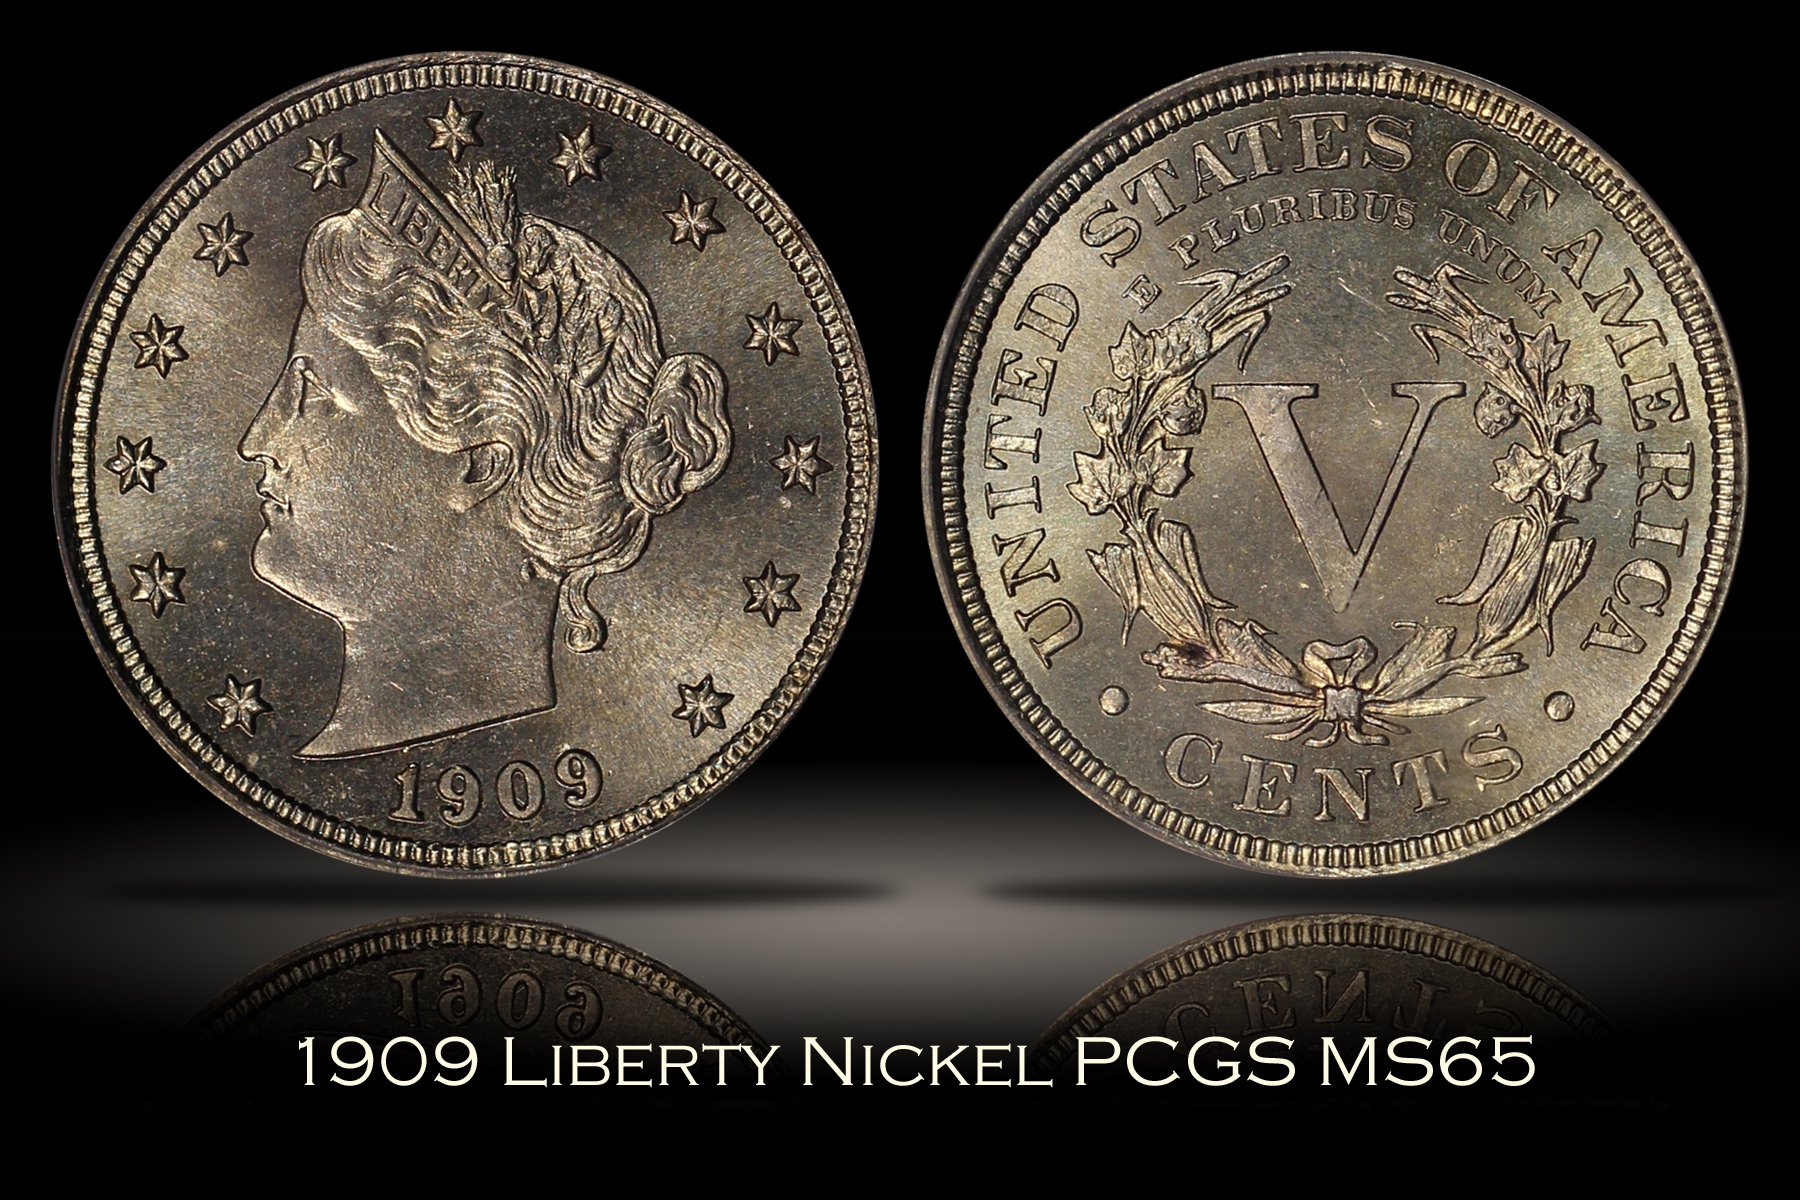 1909 Liberty Nickel PCGS MS65